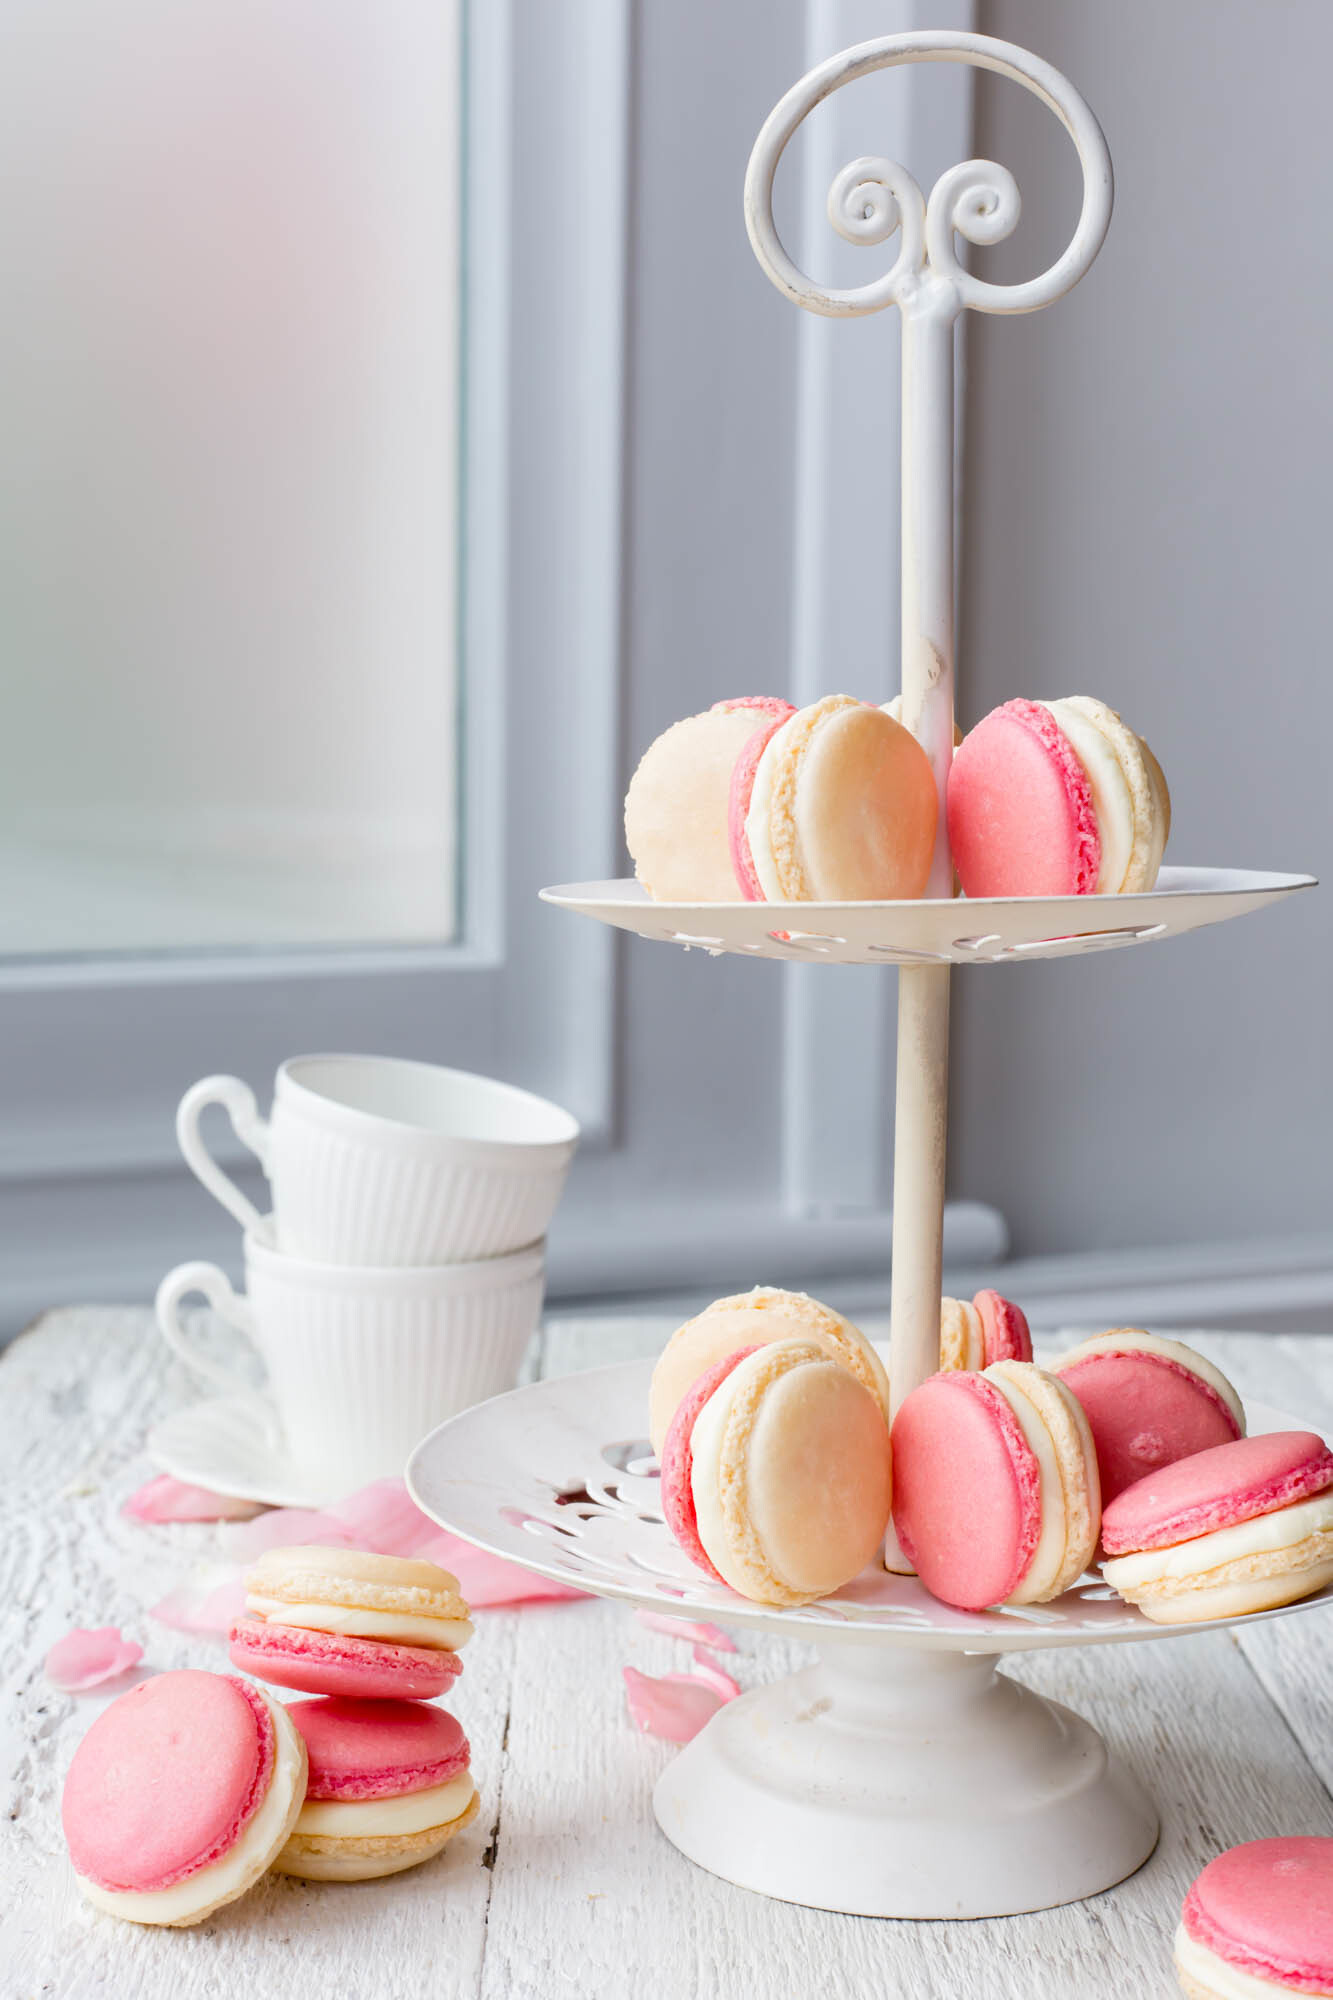 Thermomix Macarons